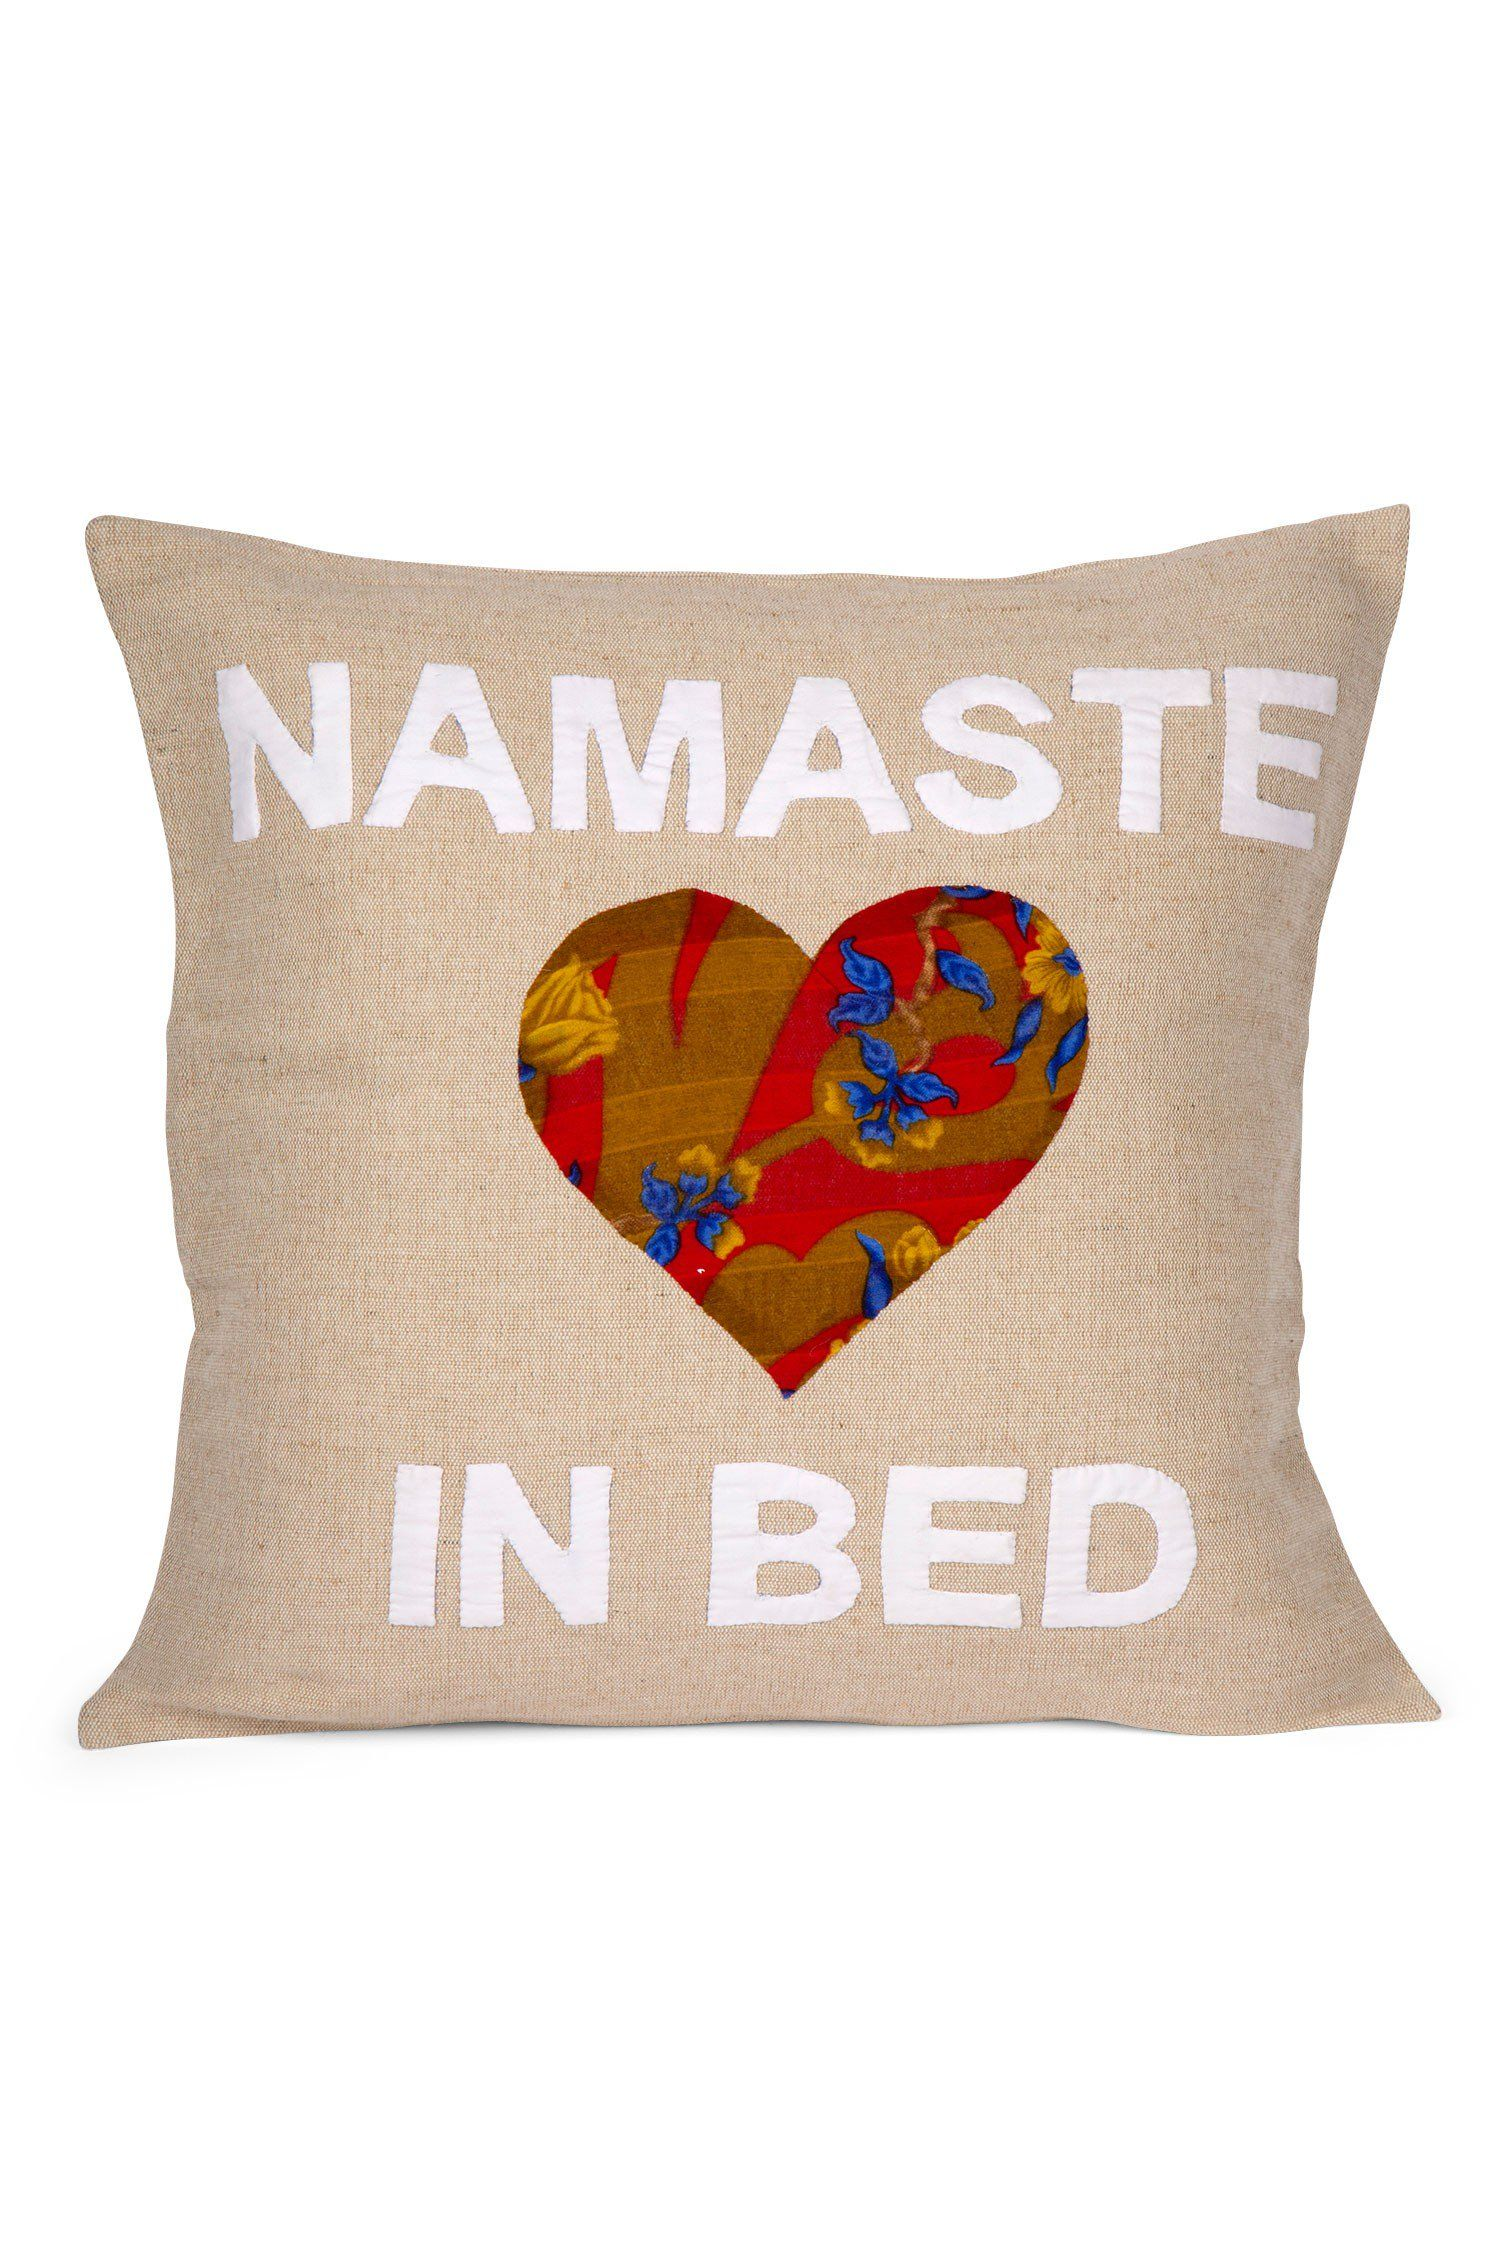 Namaste in Bed Pillow Zzz Pinterest Mindful yoga Namaste and